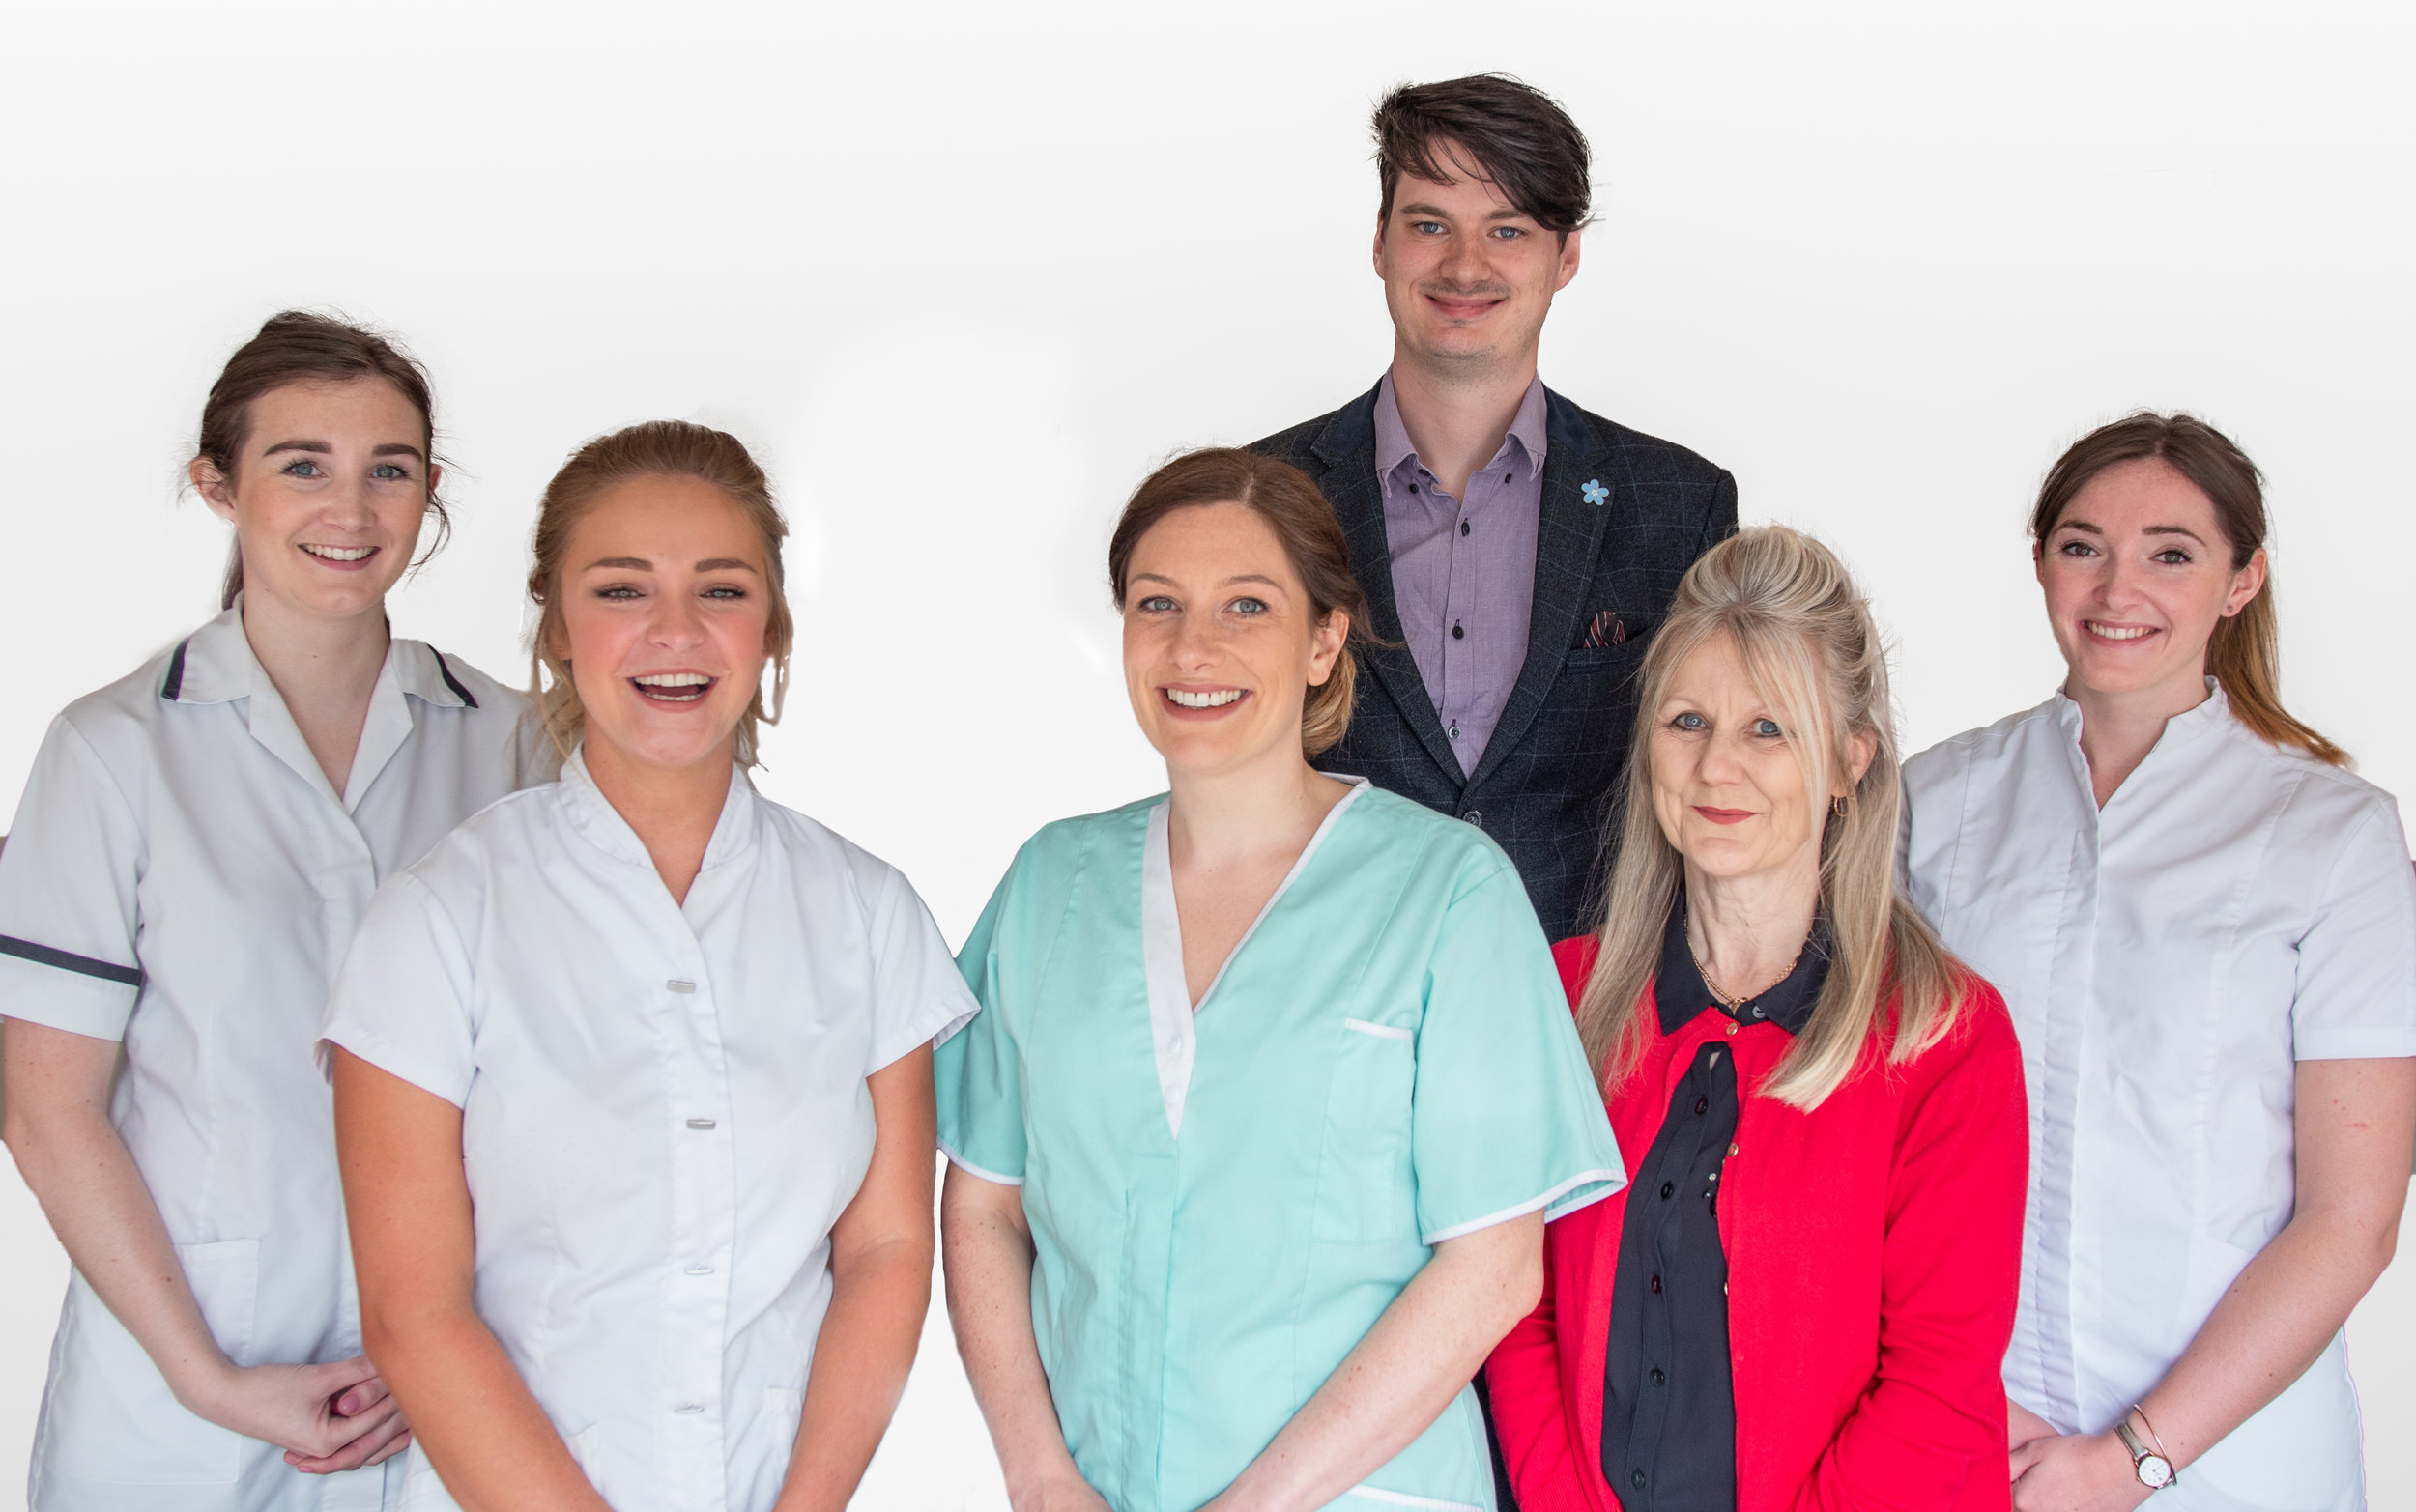 Meet Our Team - We have a dedicated team of osteopaths who always go the extra mile for their patients.See our team and learn more about their specialities.